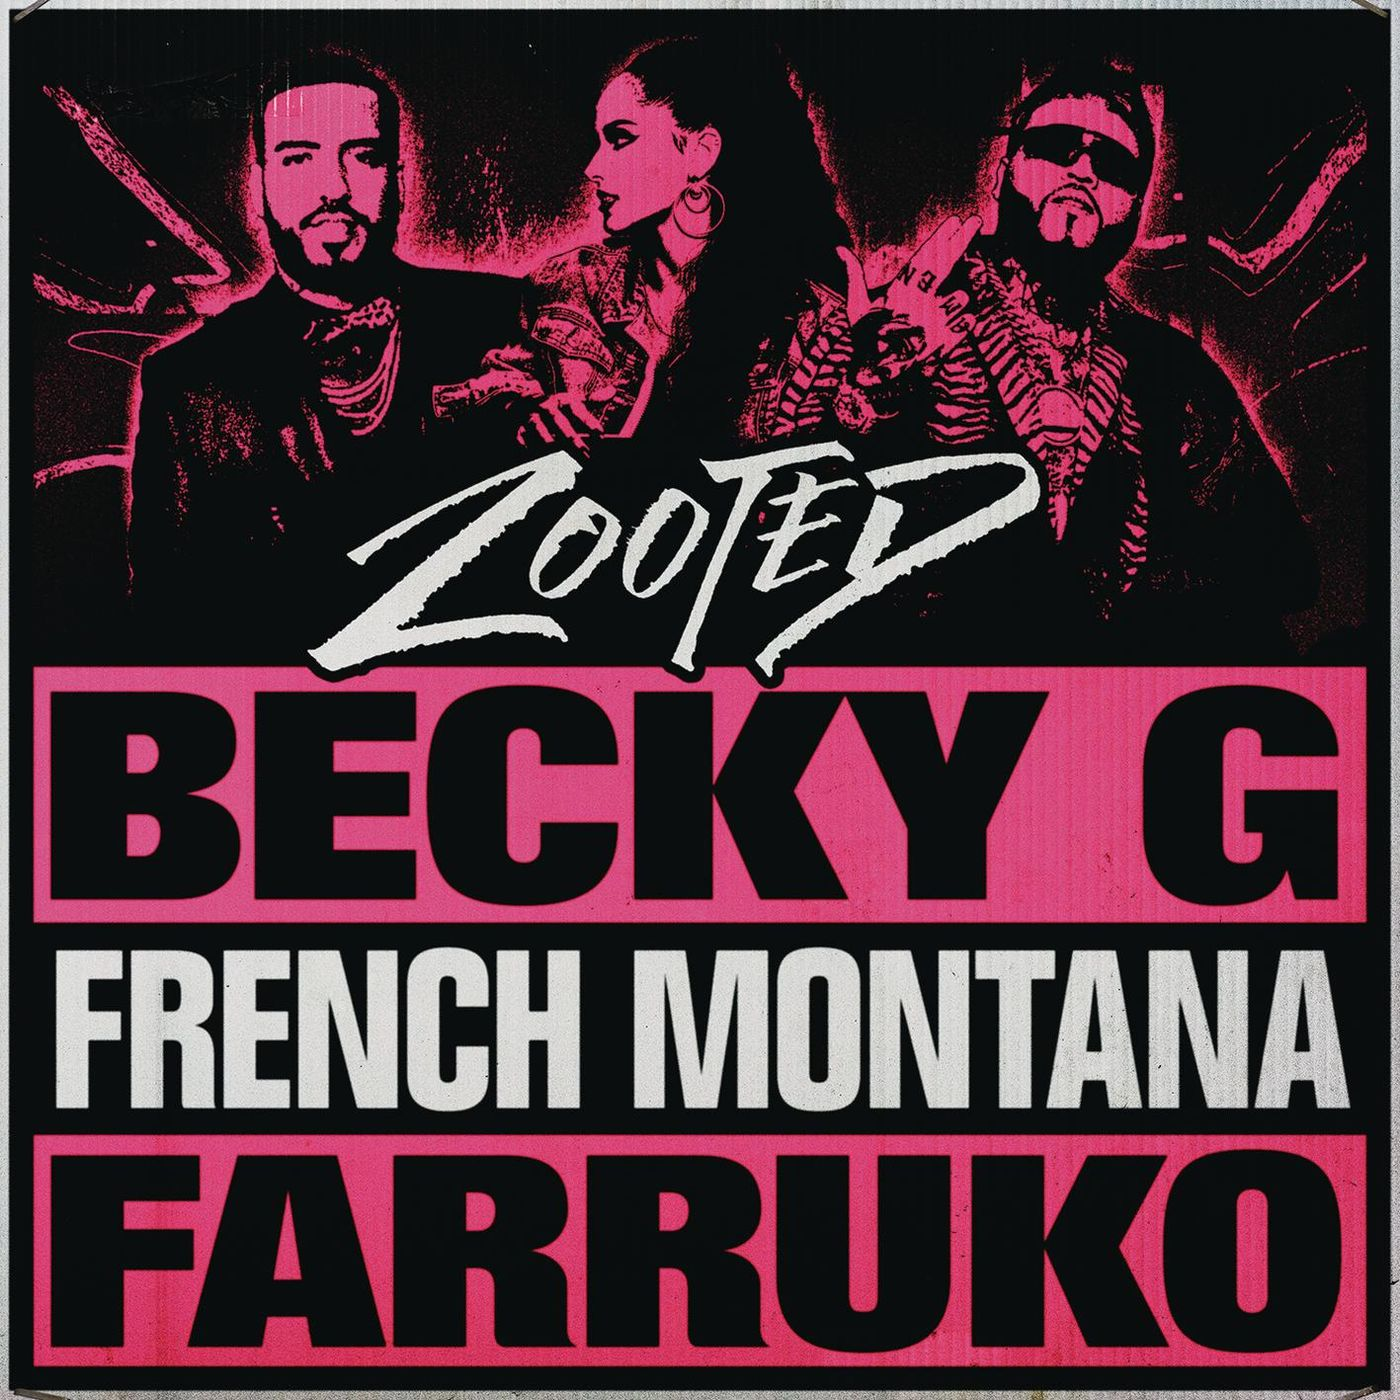 Becky G X Becky G X  French Montana X Farruko - Zooted.mp3